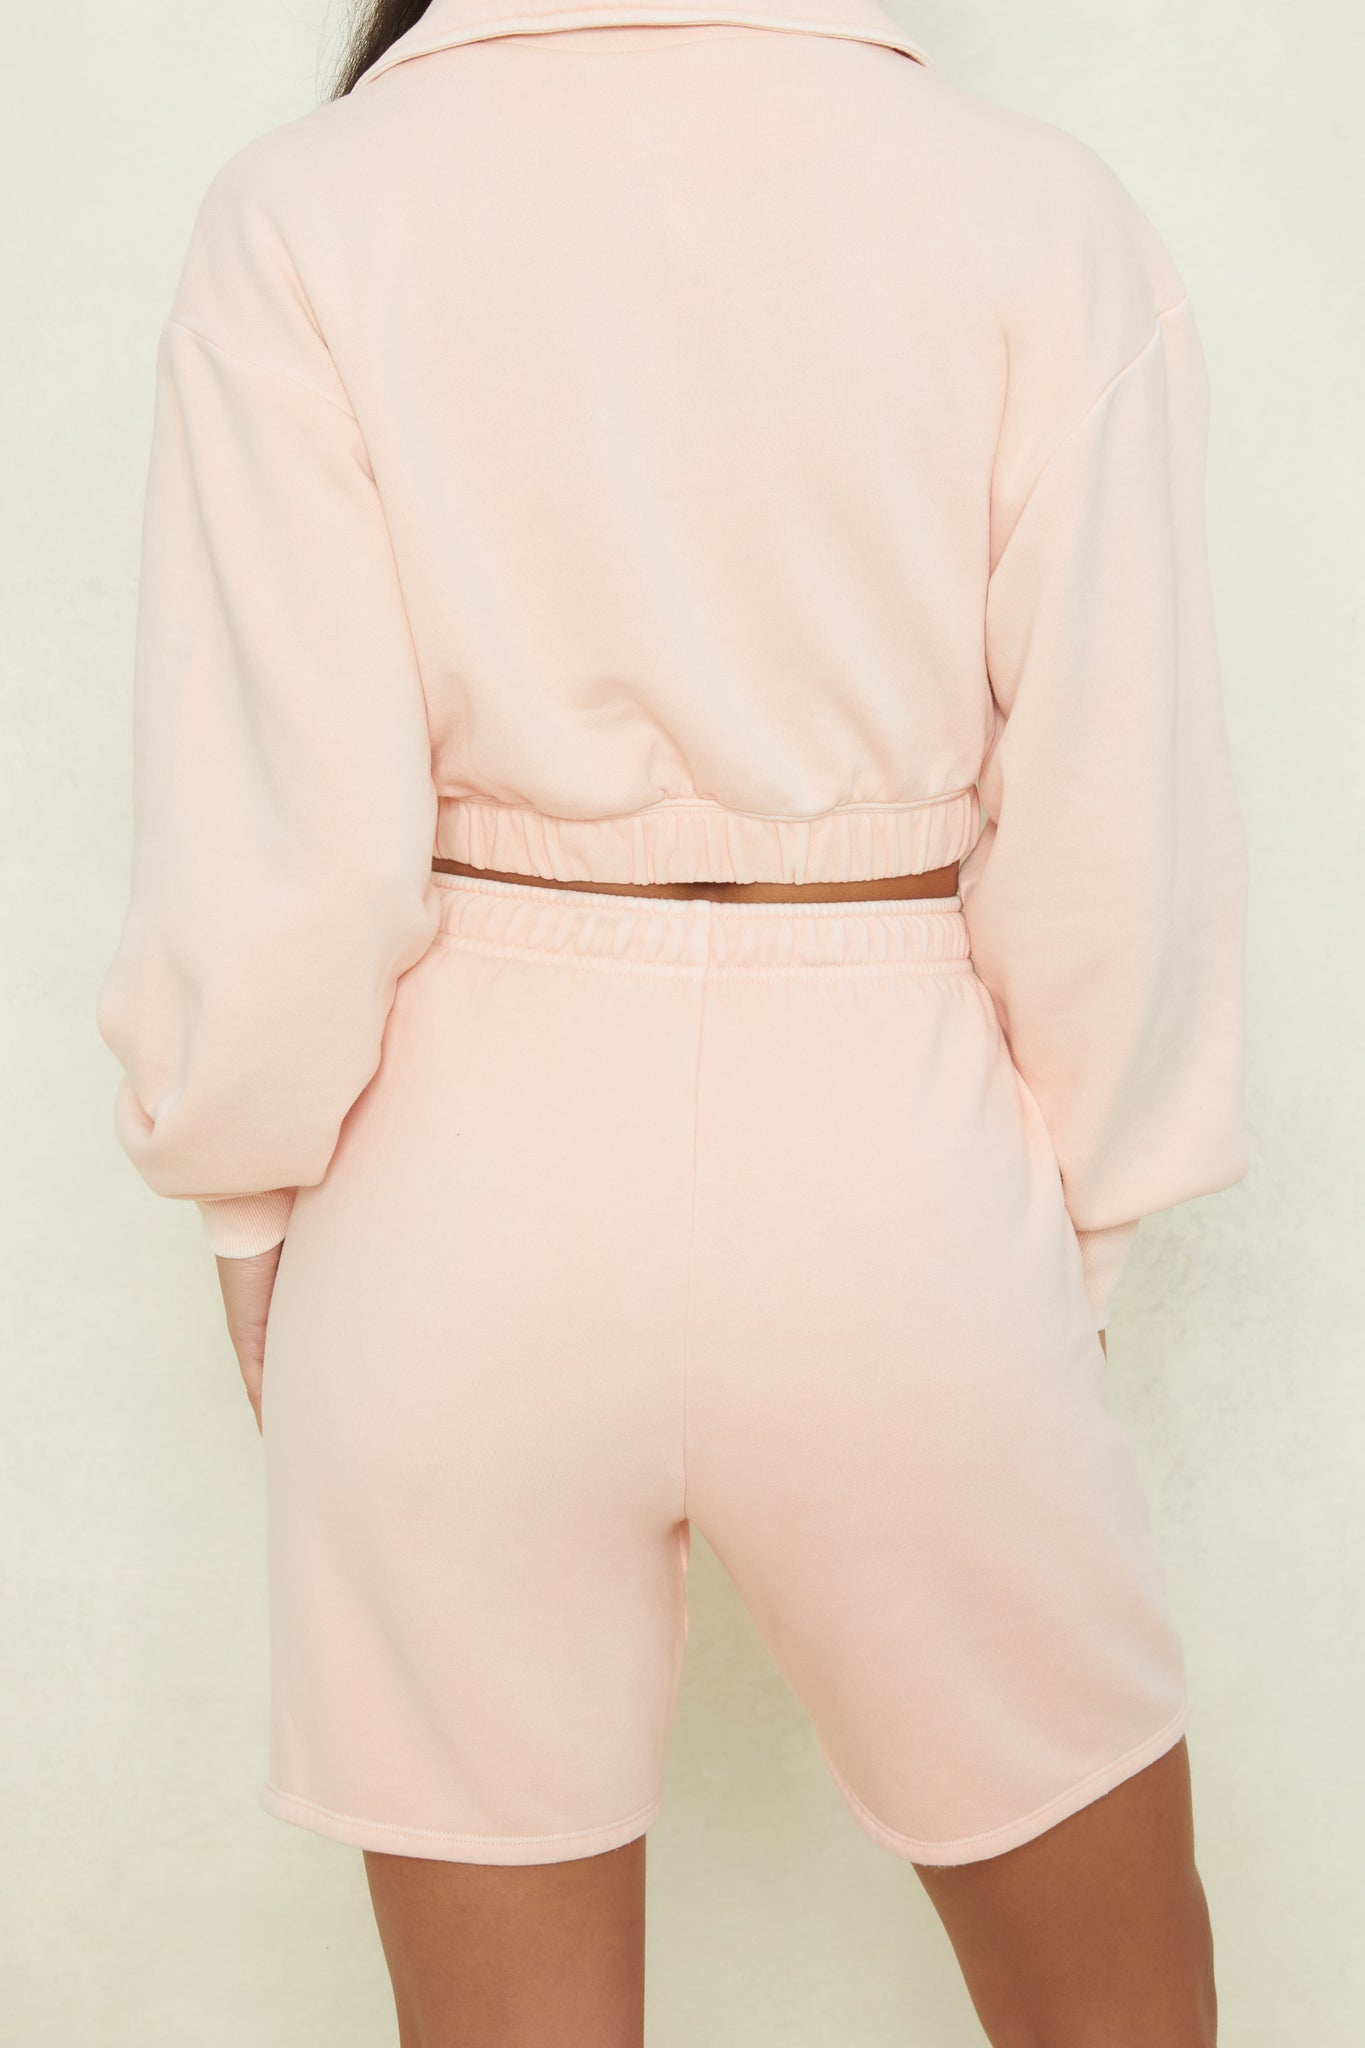 Track Star - Shorts in Blush